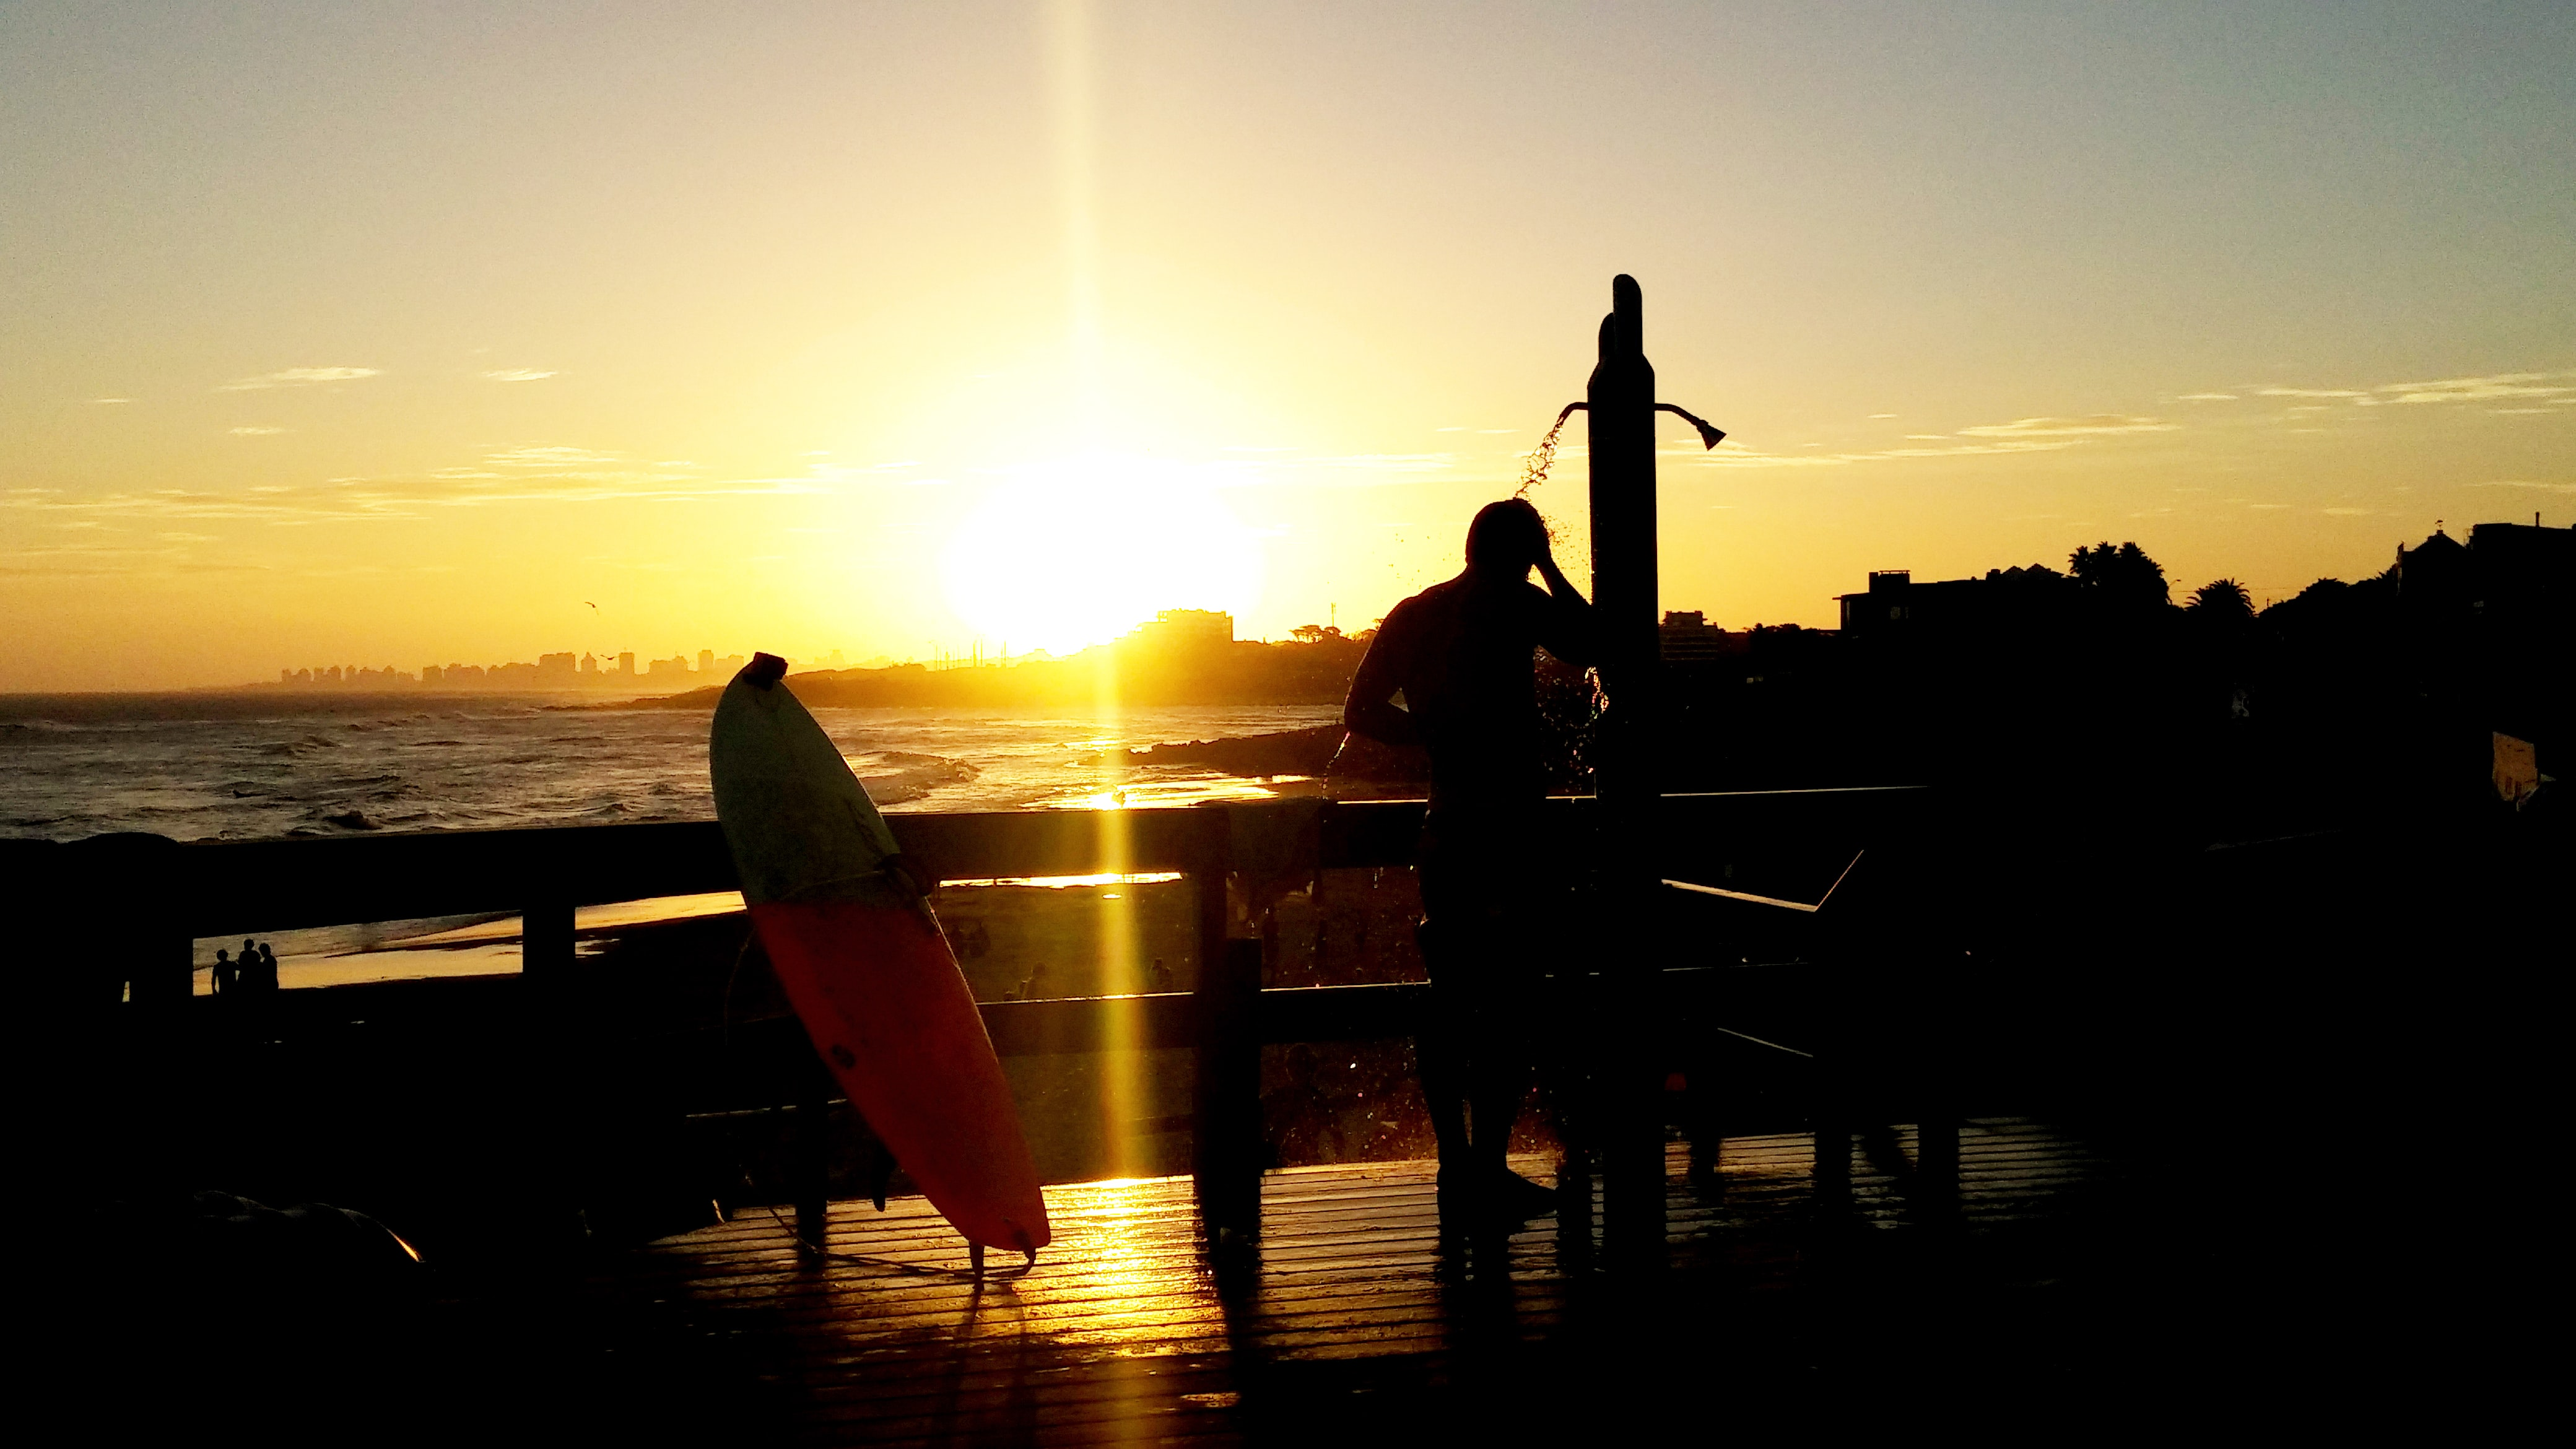 A silhouette of a man next to a propped up surfboard, looking out towards the sunset over the sea